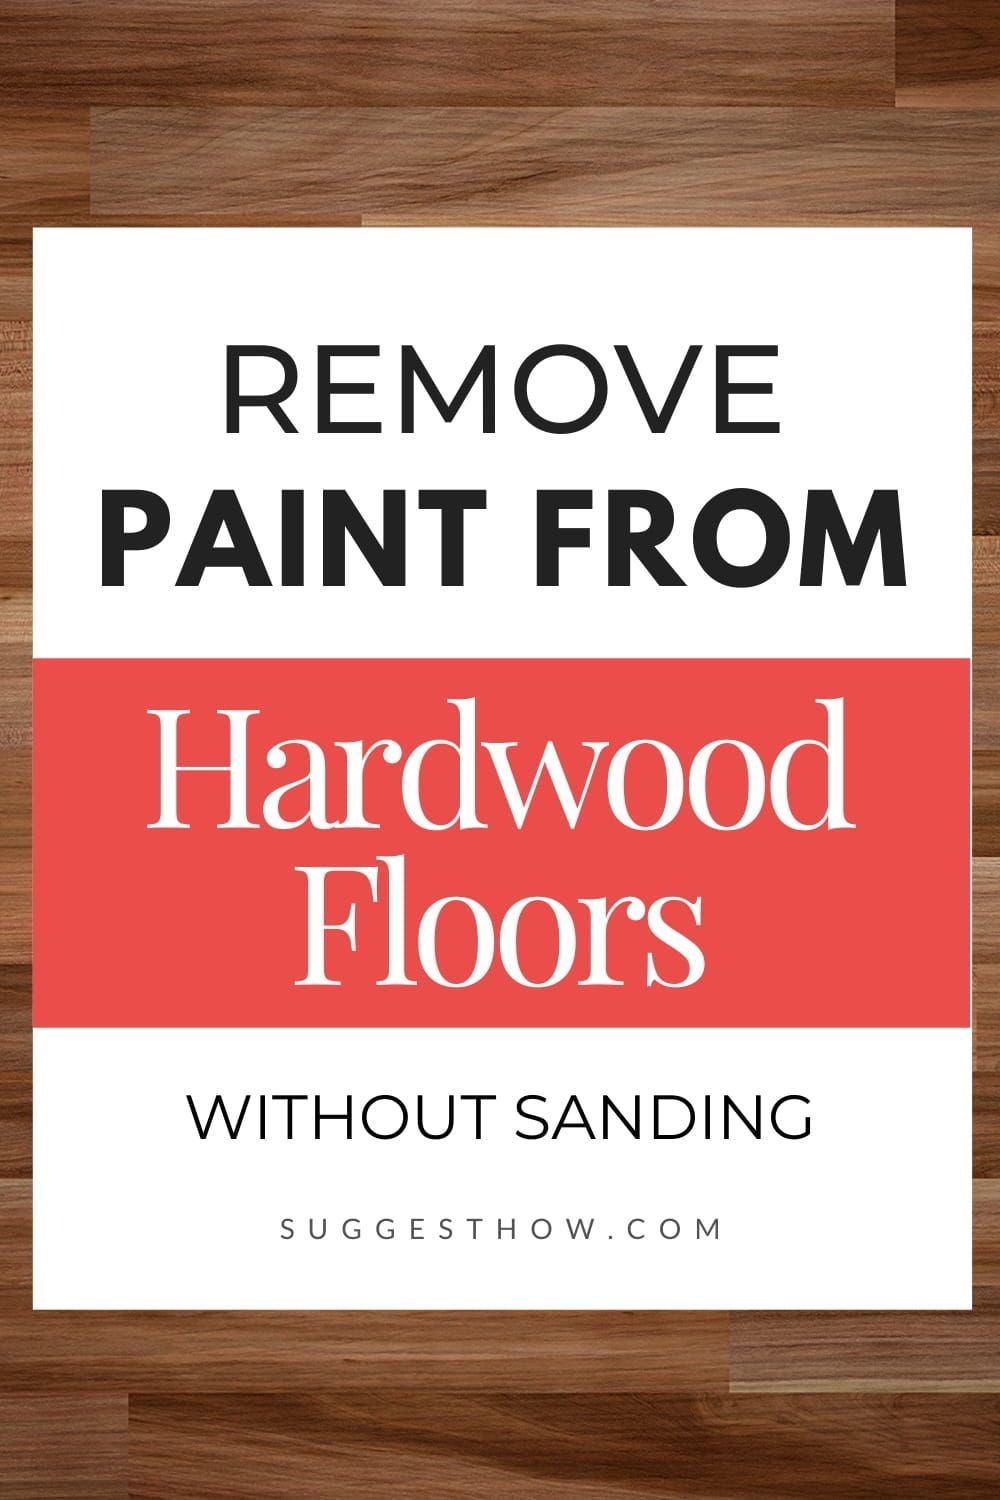 How to remove paint from hardwood floors without sanding